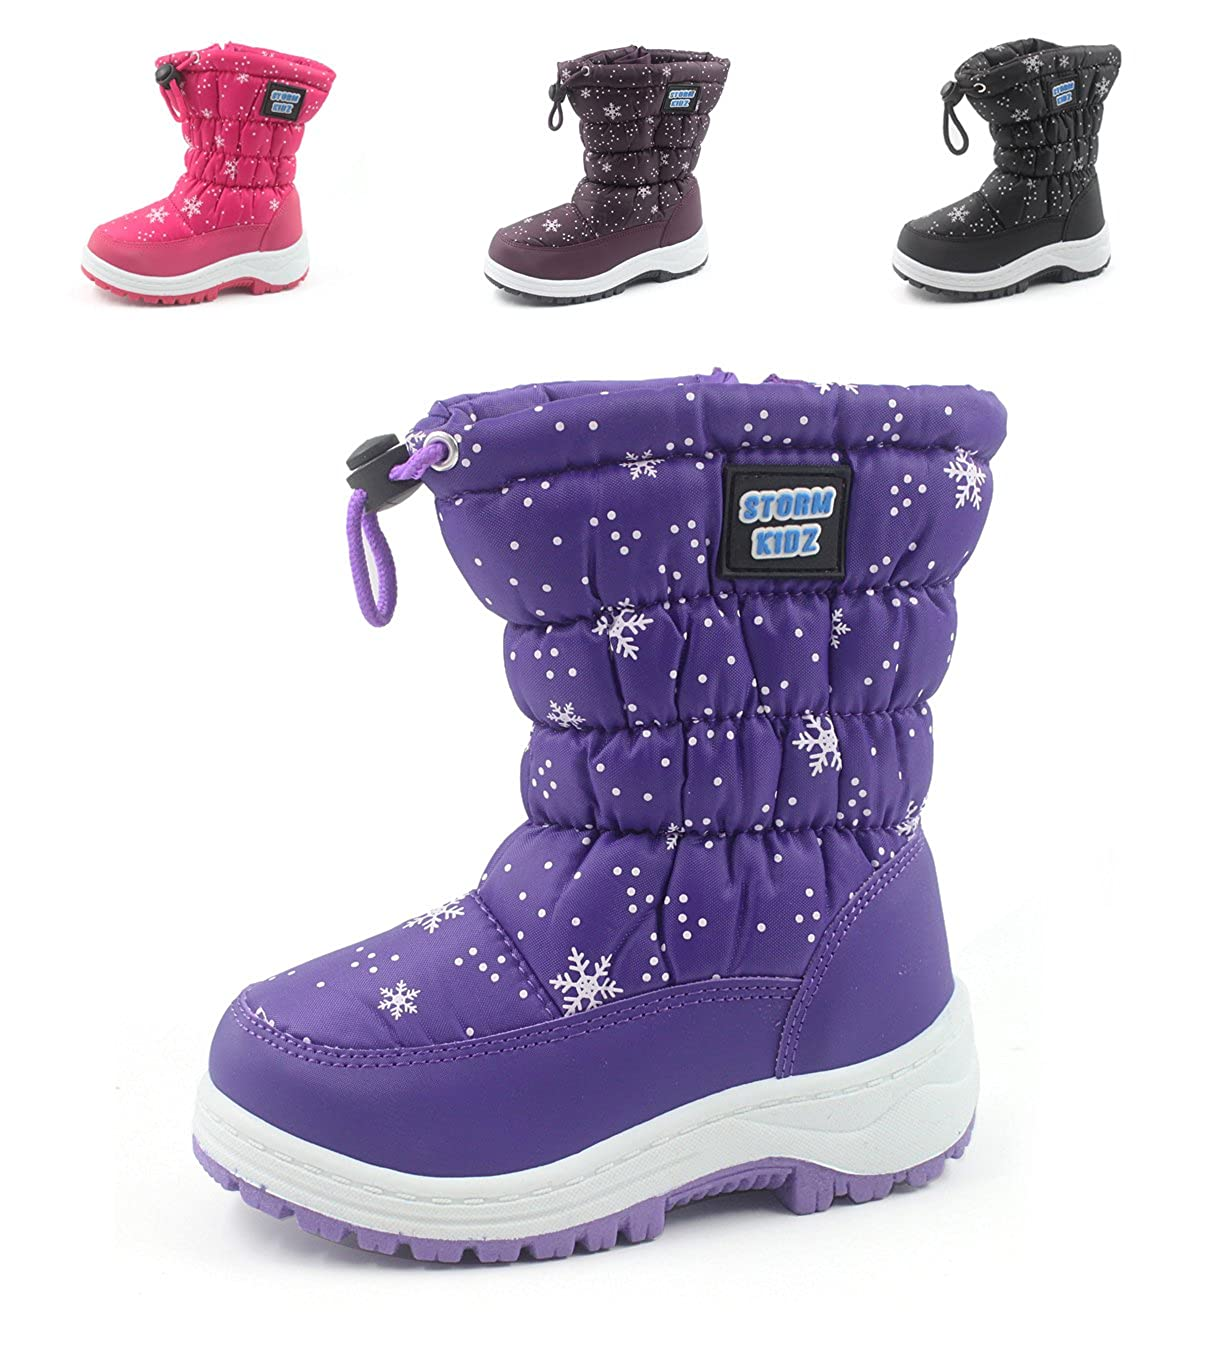 Girl/'s Comfy Snow Rain Warm Furry Boots Shoes Toddler to Little Kids Purple